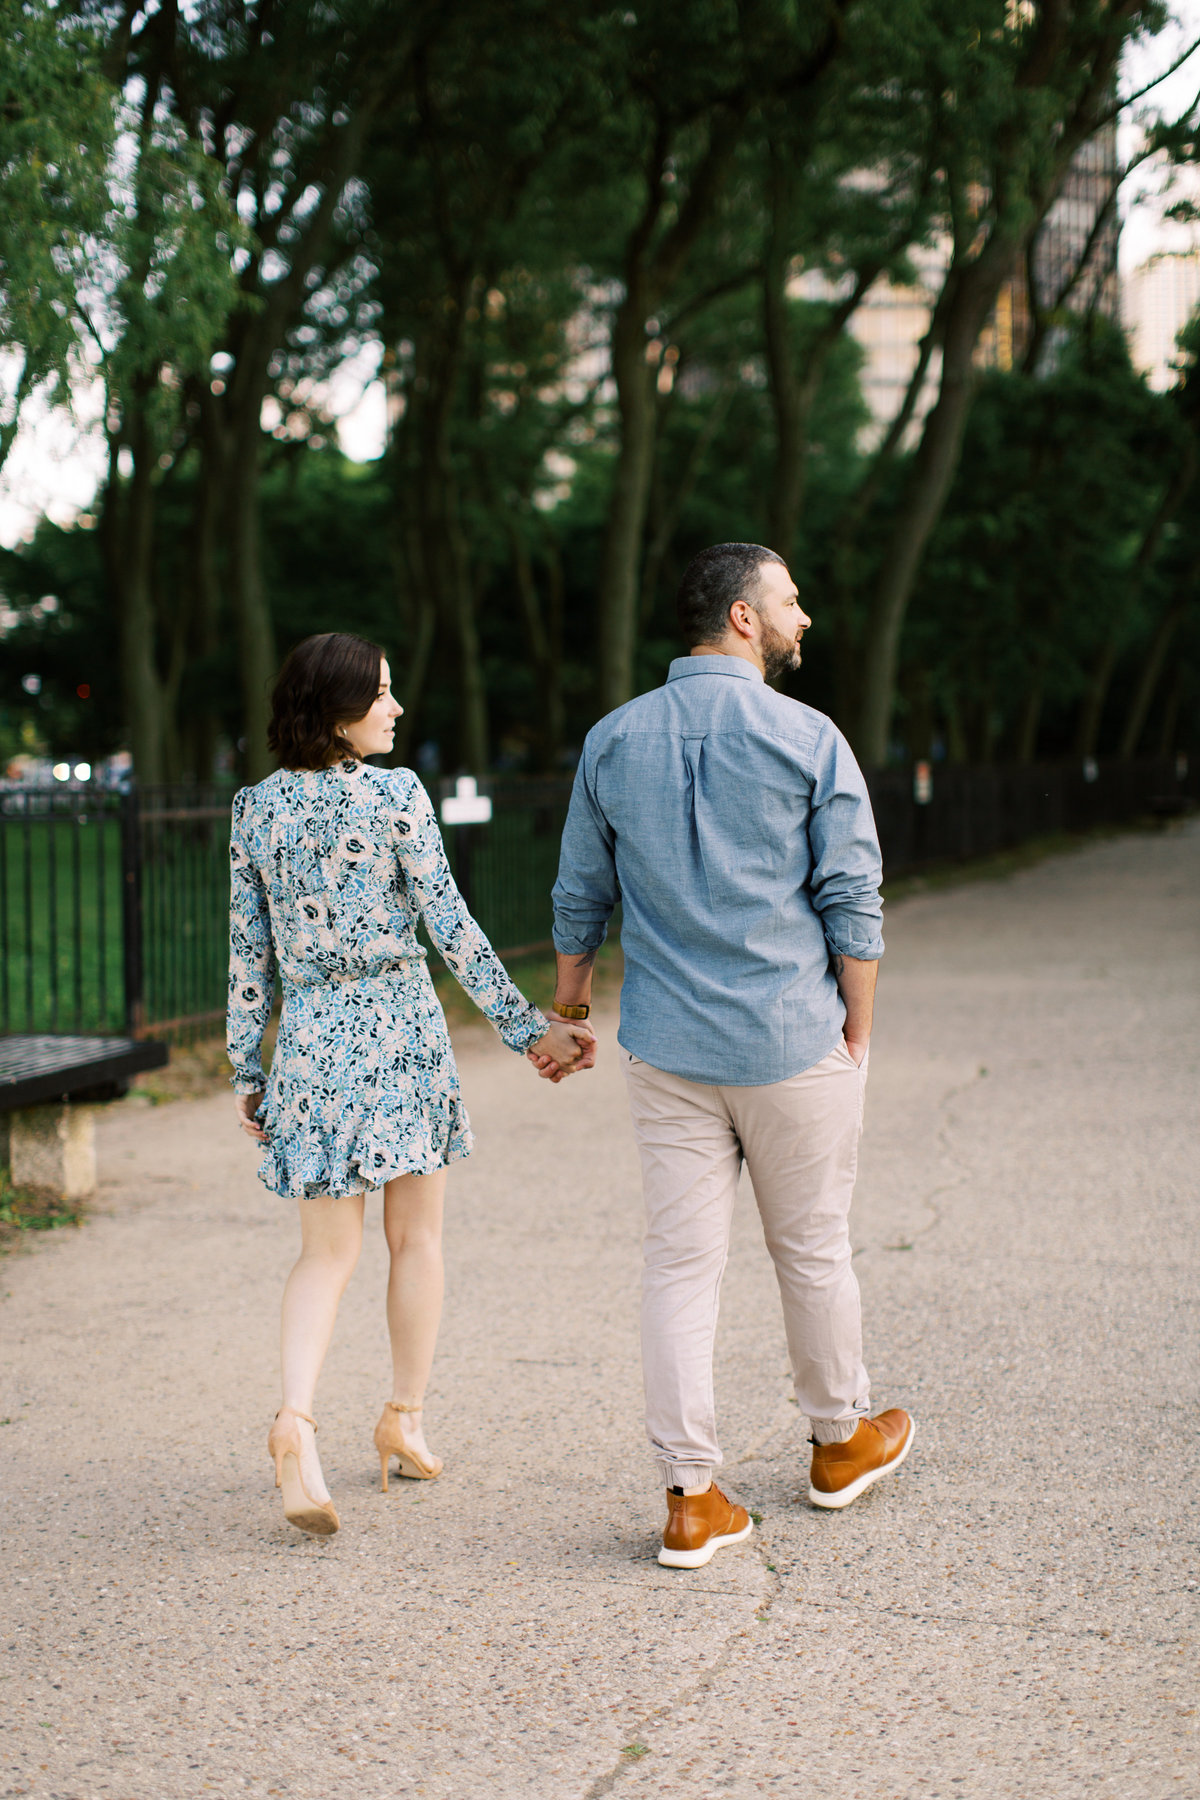 AllieDavid_Engagement_September042019_82